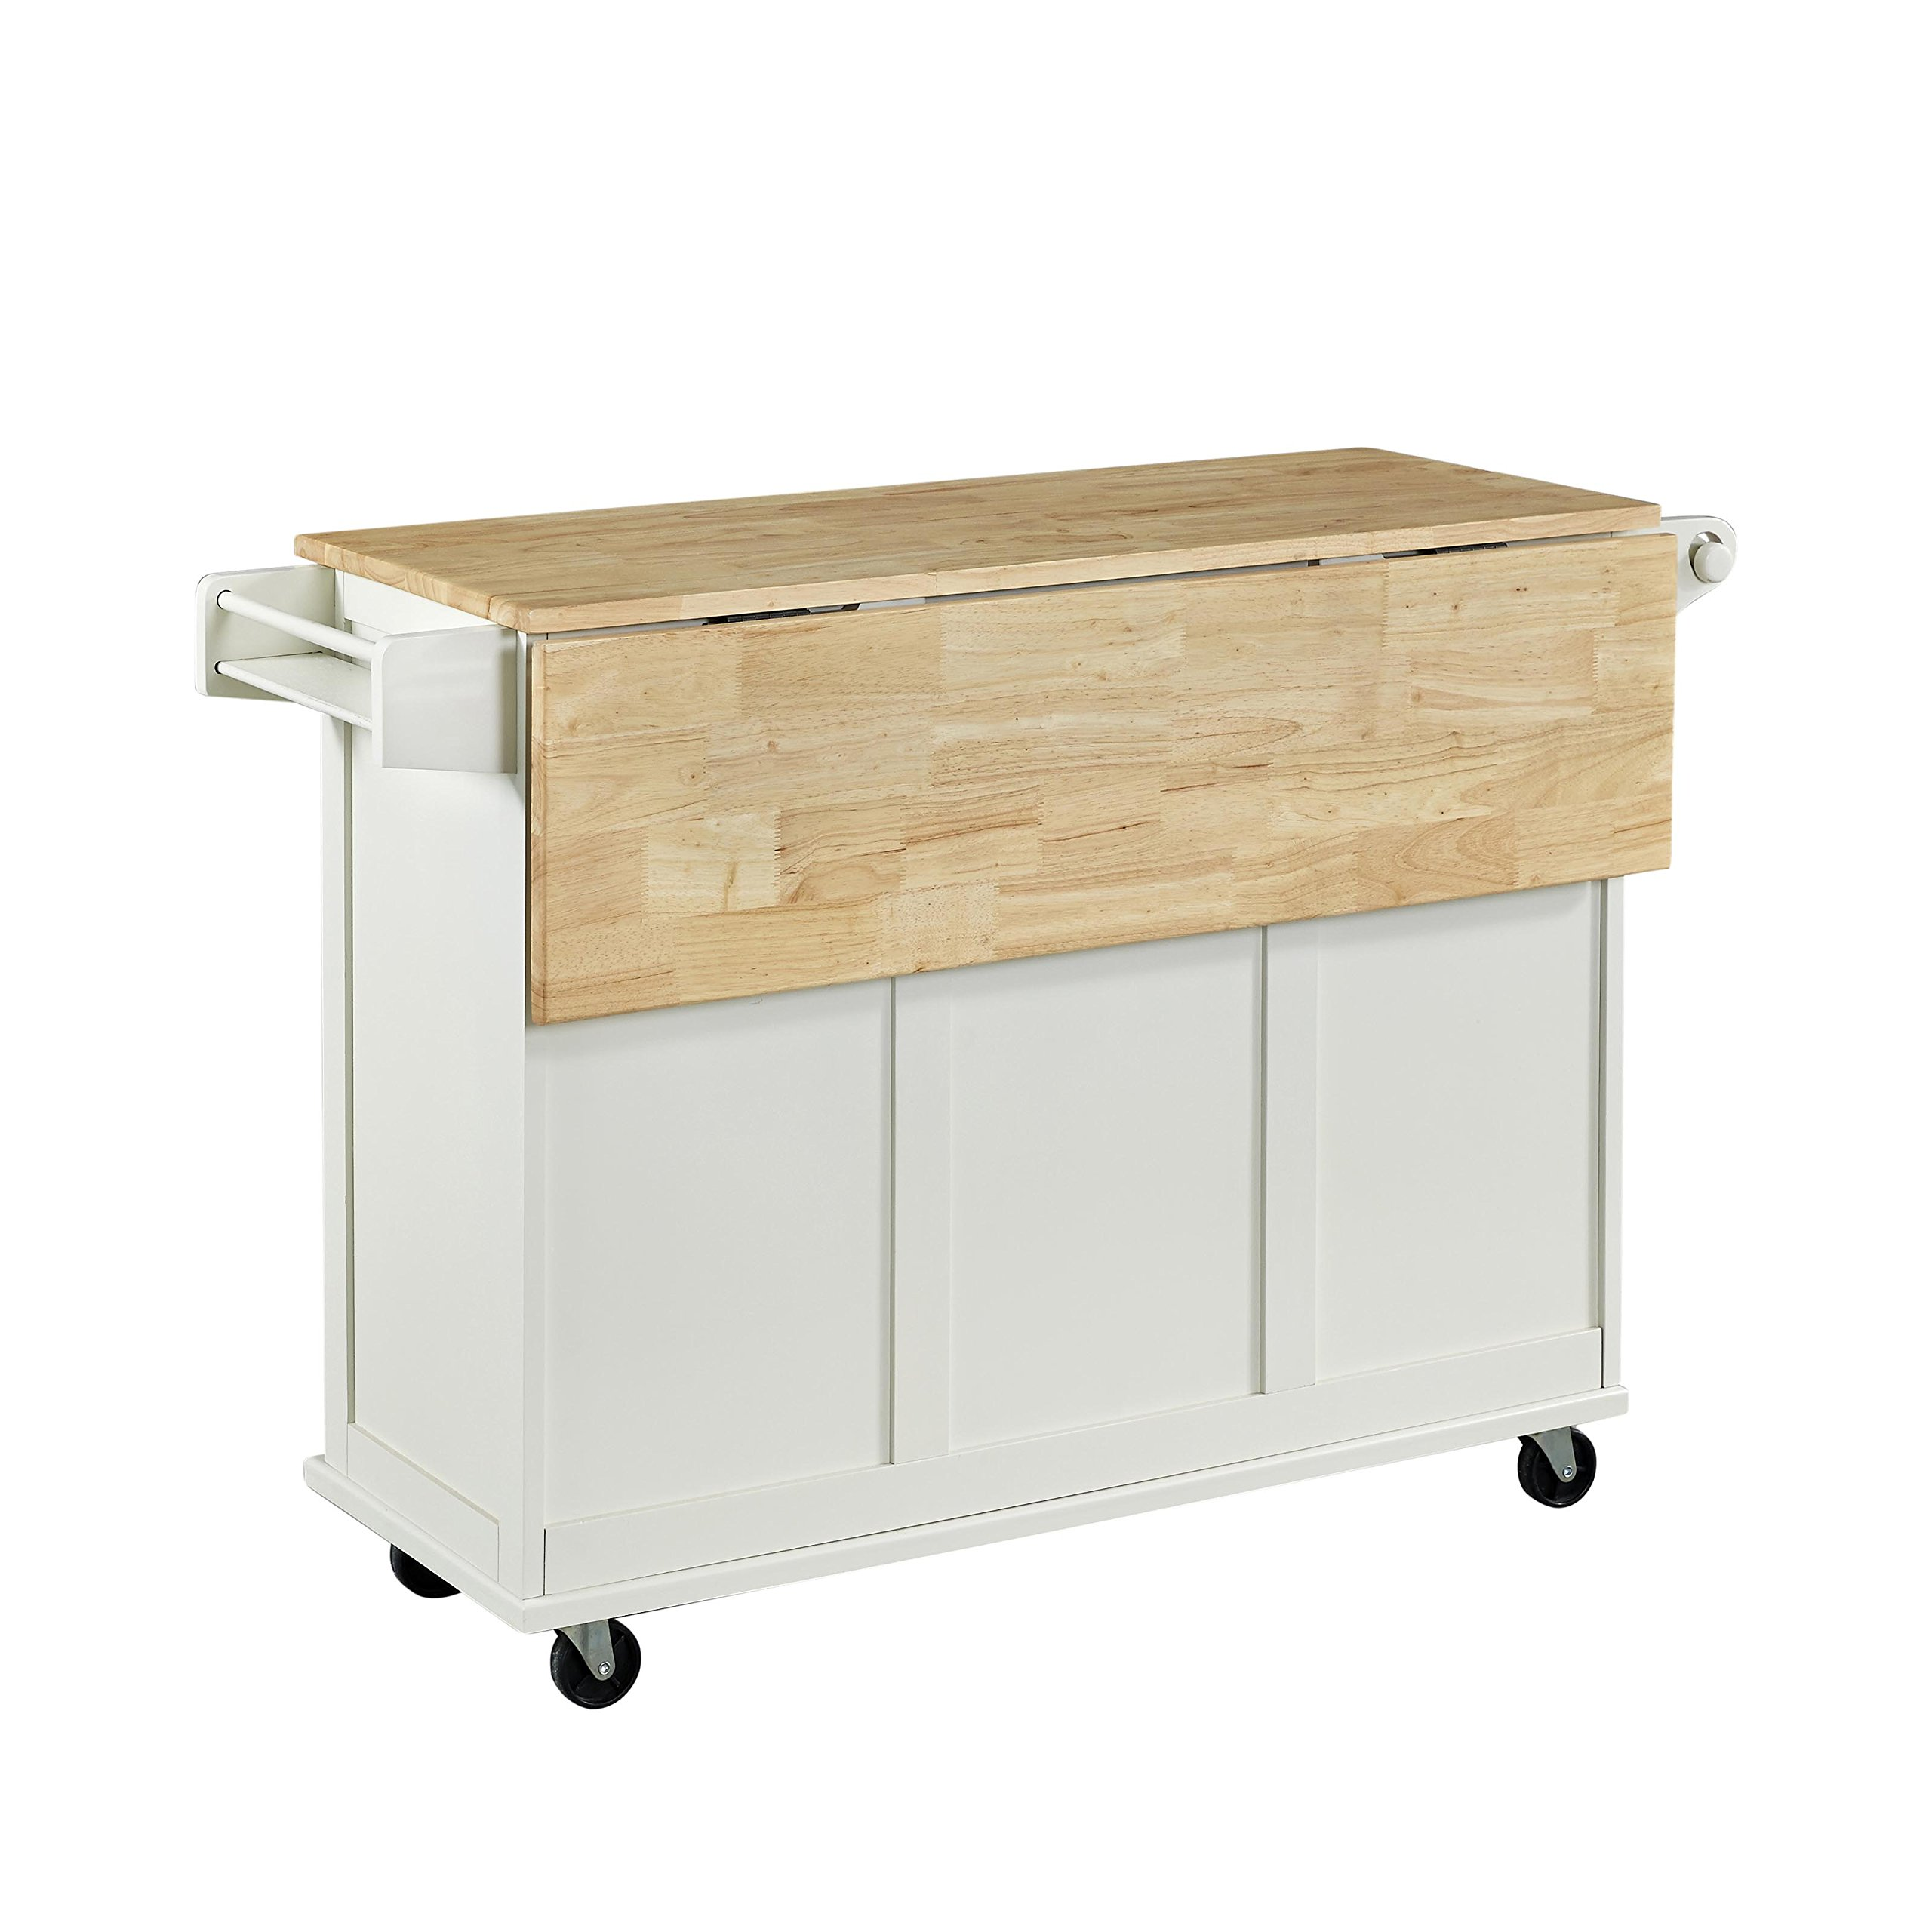 Home Styles 4511-95 Liberty Kitchen Cart with Wood Top, White by Home Styles (Image #2)